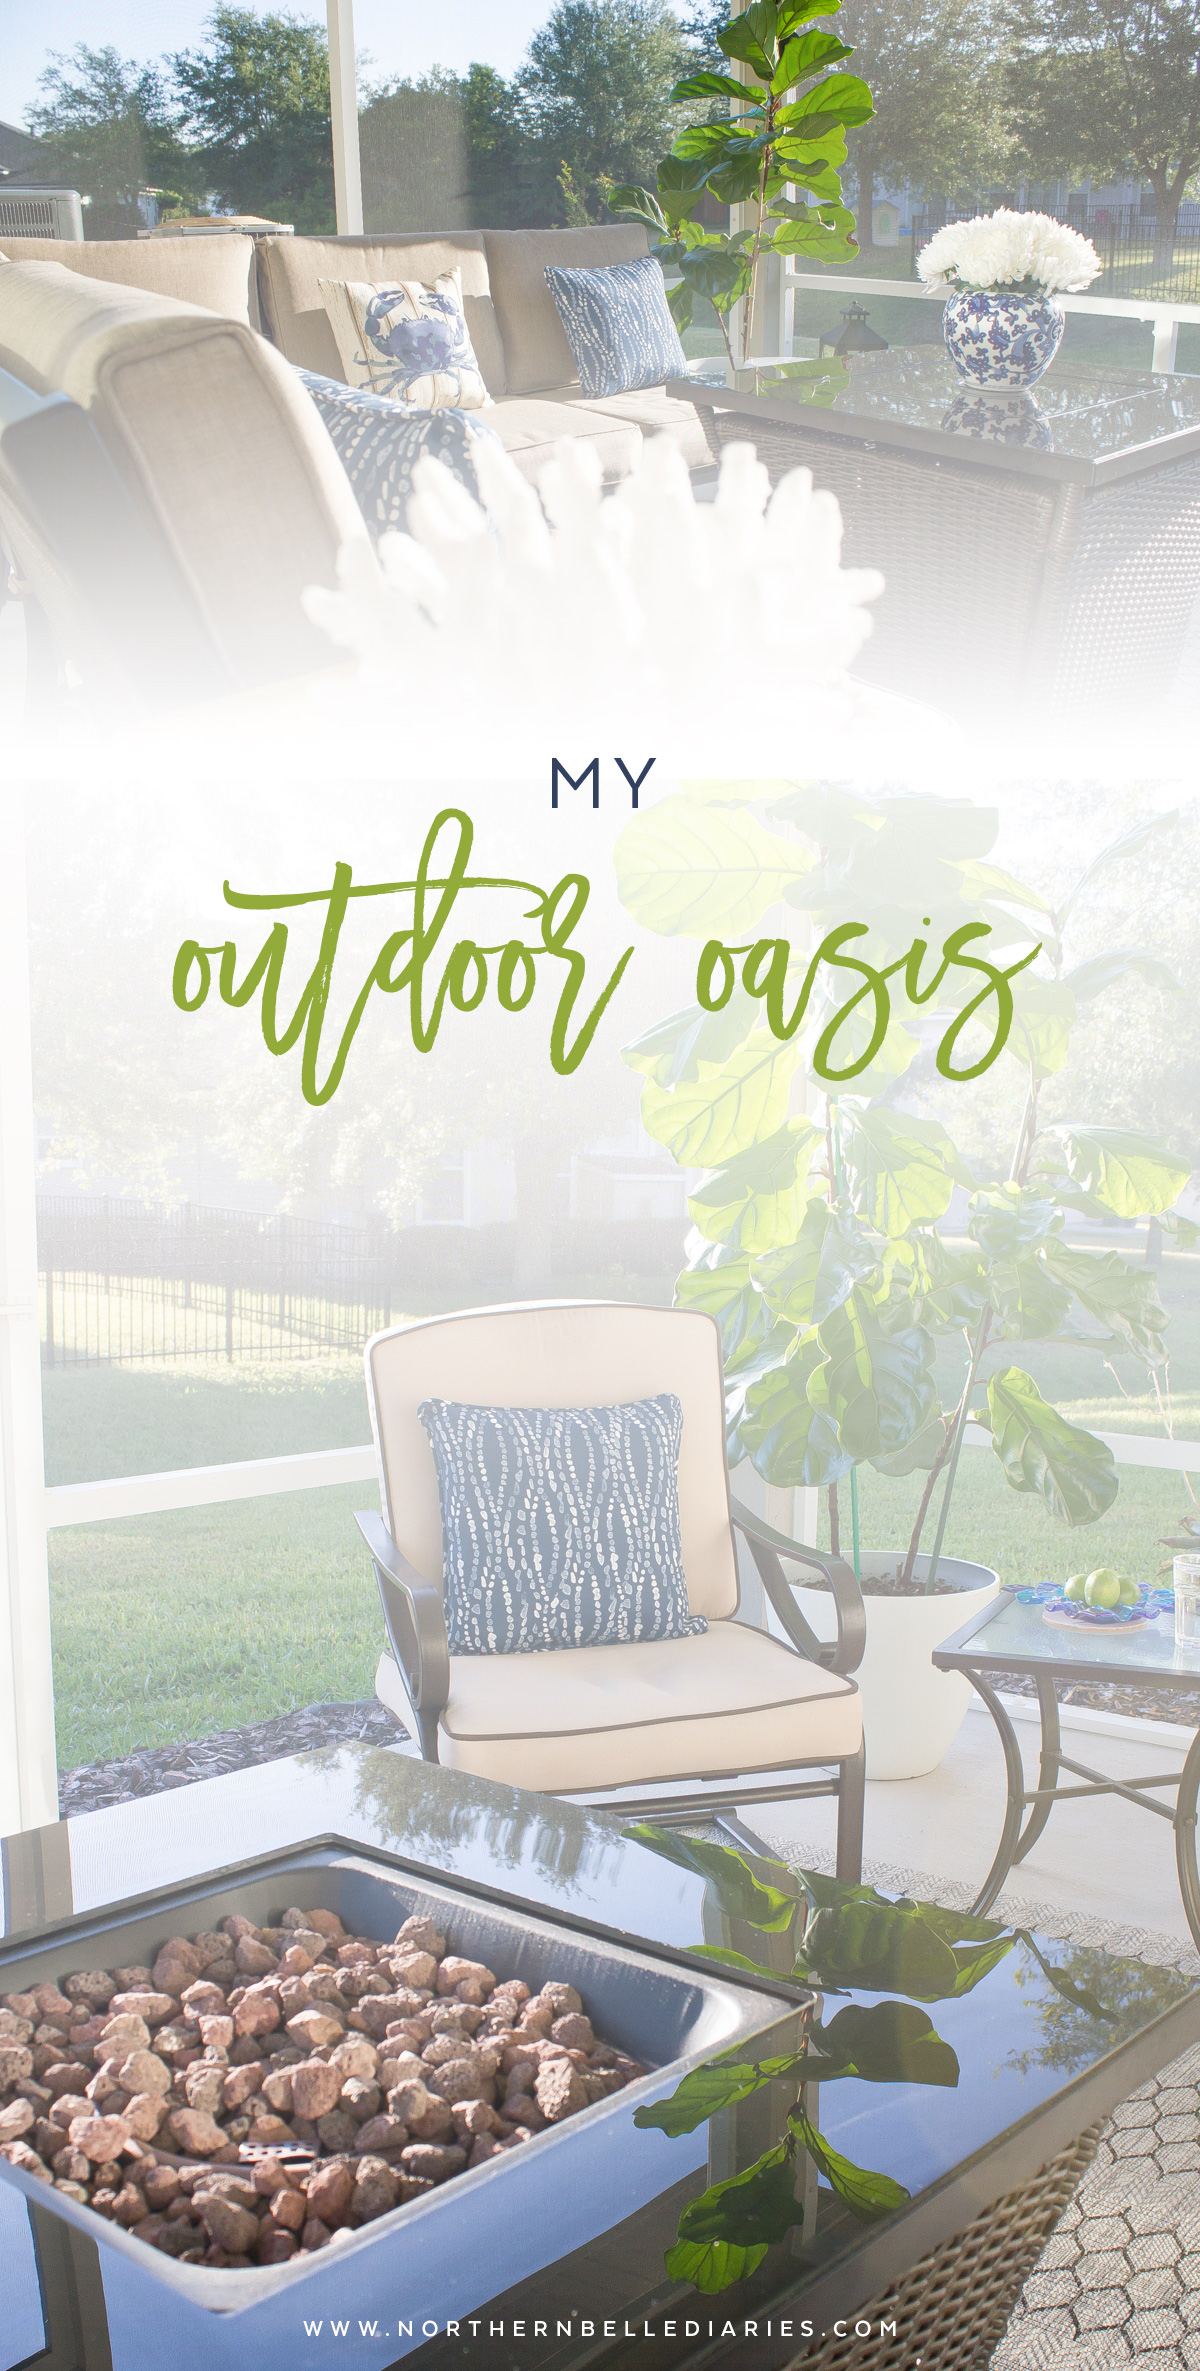 Affordable patio makeover with Lowe's #MyOutdoorOasis #ad - Northern Belle Diaries